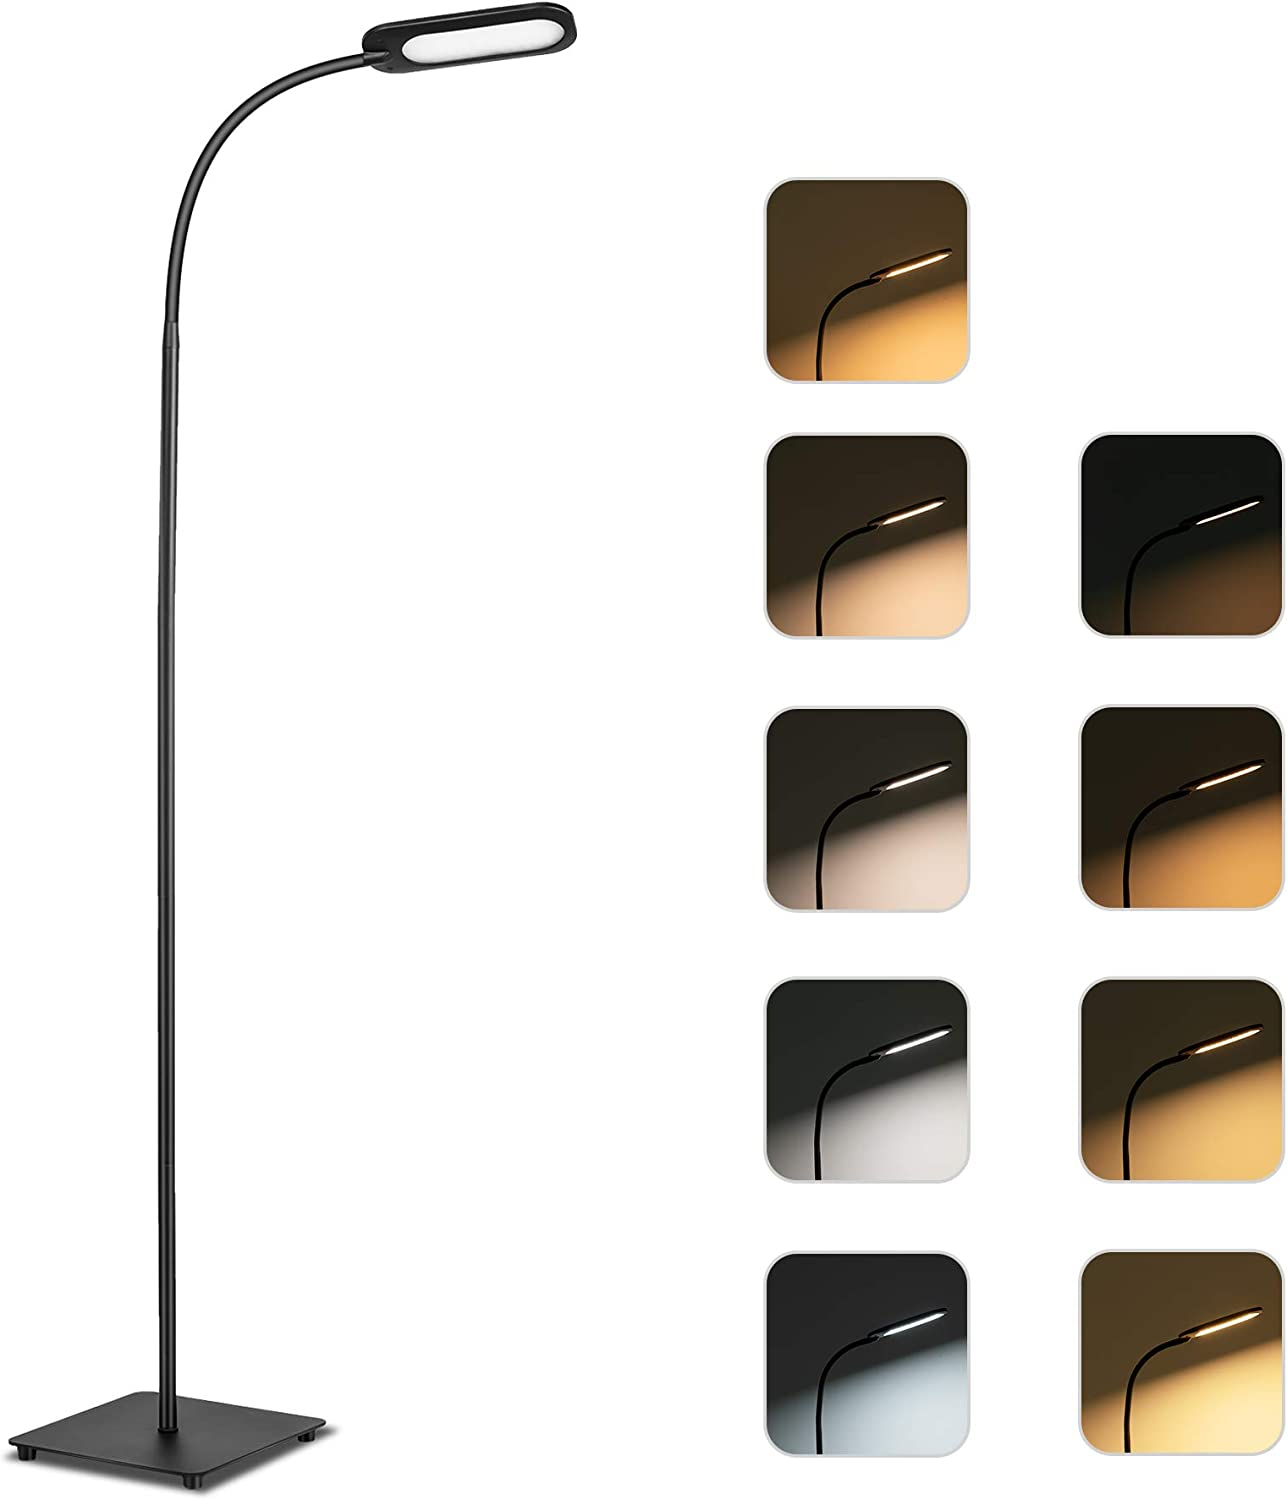 Floor Lamp Teckin Led Floor Lamps For Living Room 5 Color Temperatures 4 Brightness Levels 1800 Lumens 12w Dimmable Adjustable Reading Lamp For Office Sewing Piano Puzzle